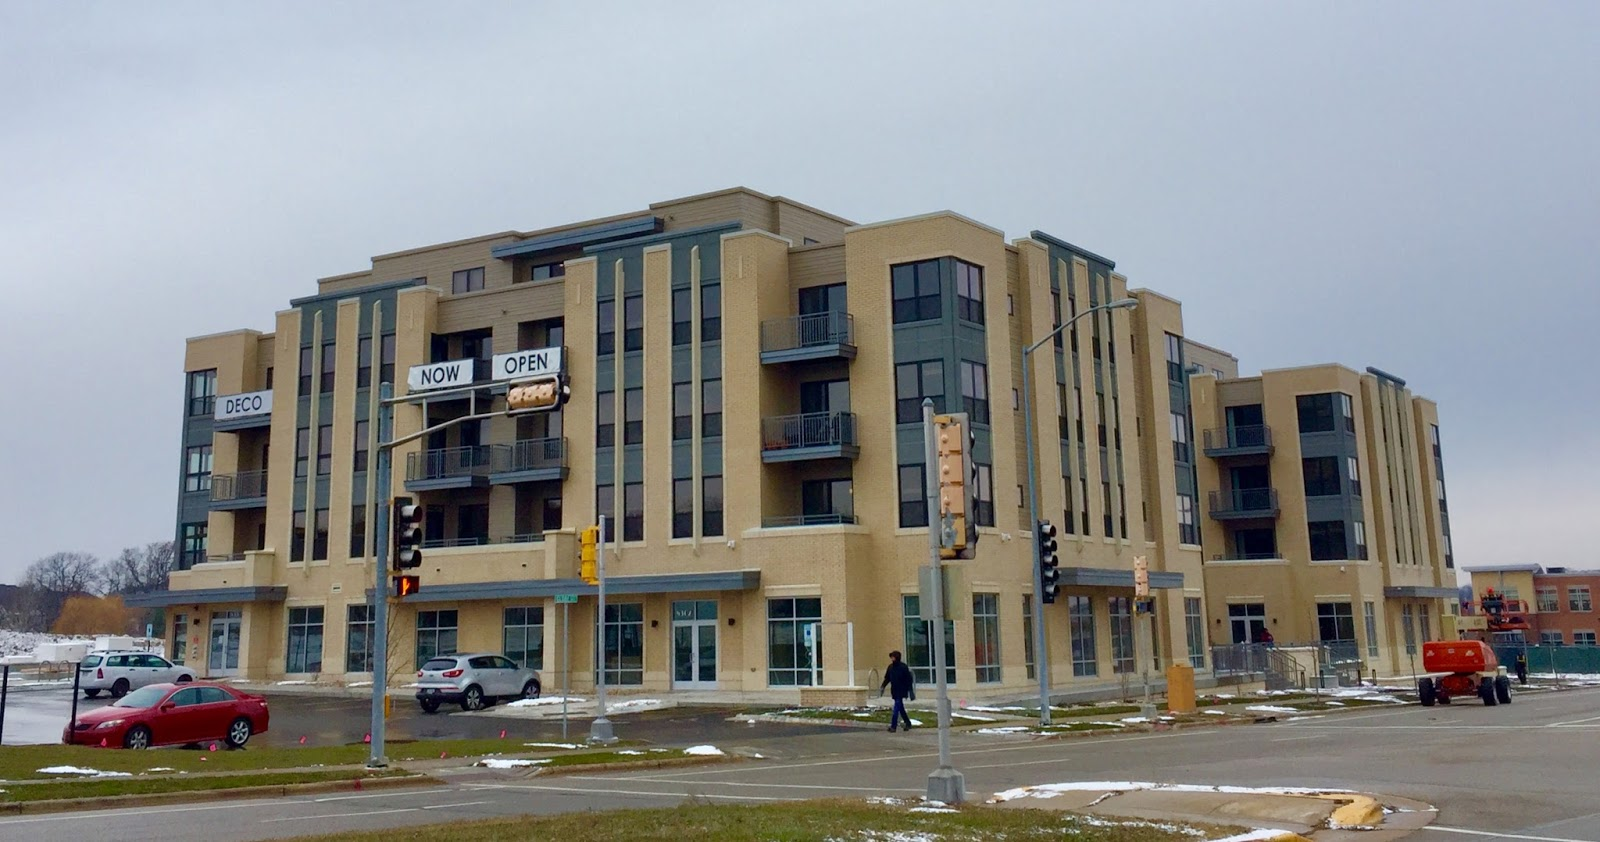 12 11 2017 Update The Deco Apartments Are Ready For Occupancy Starts Here